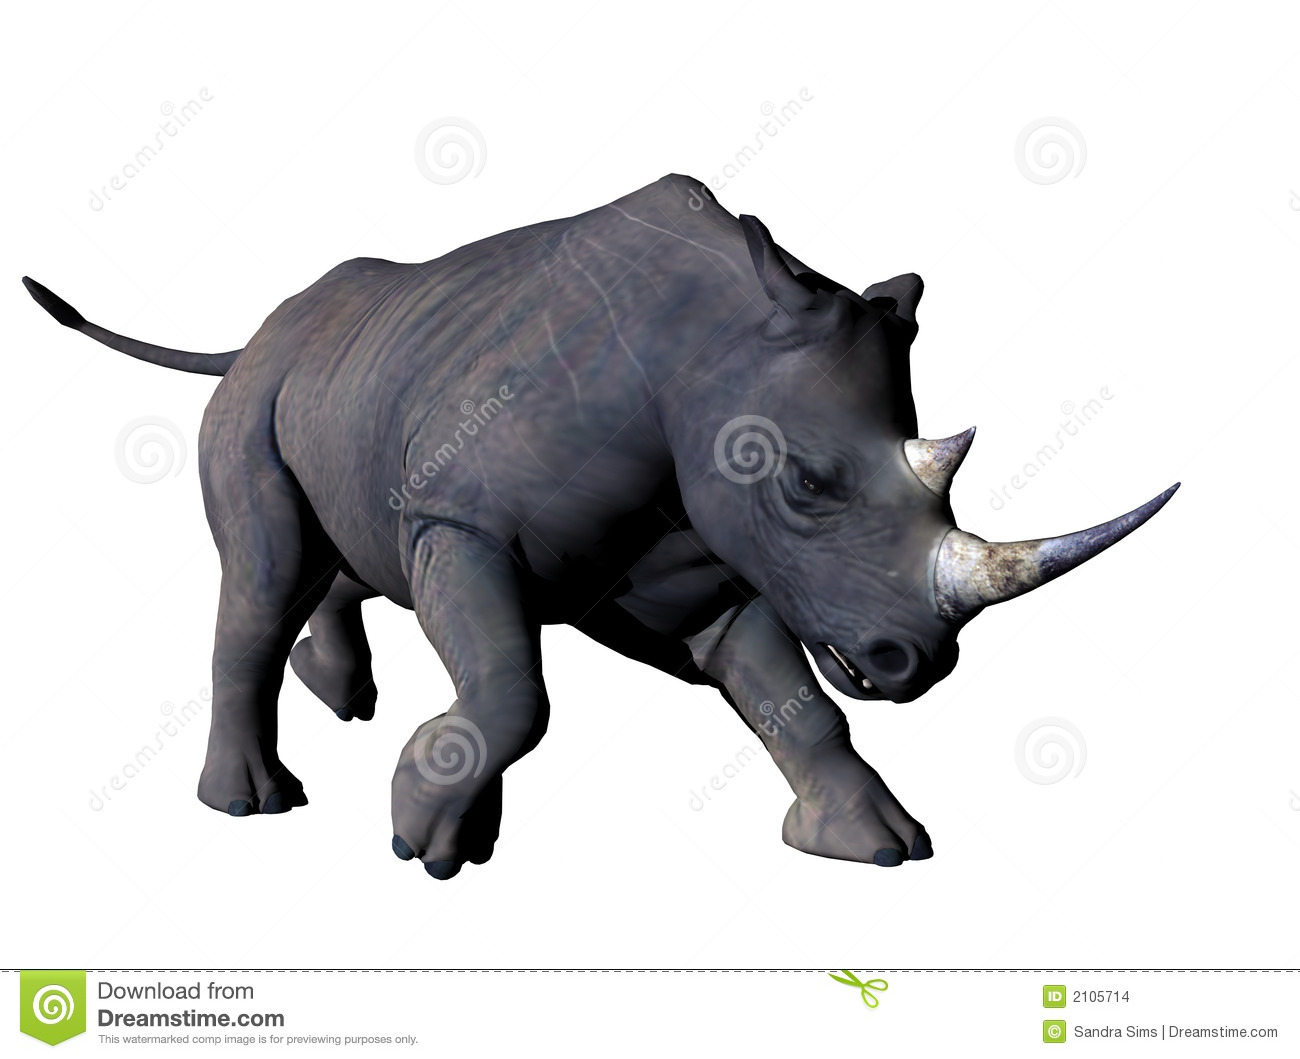 how to turn off background rhino render